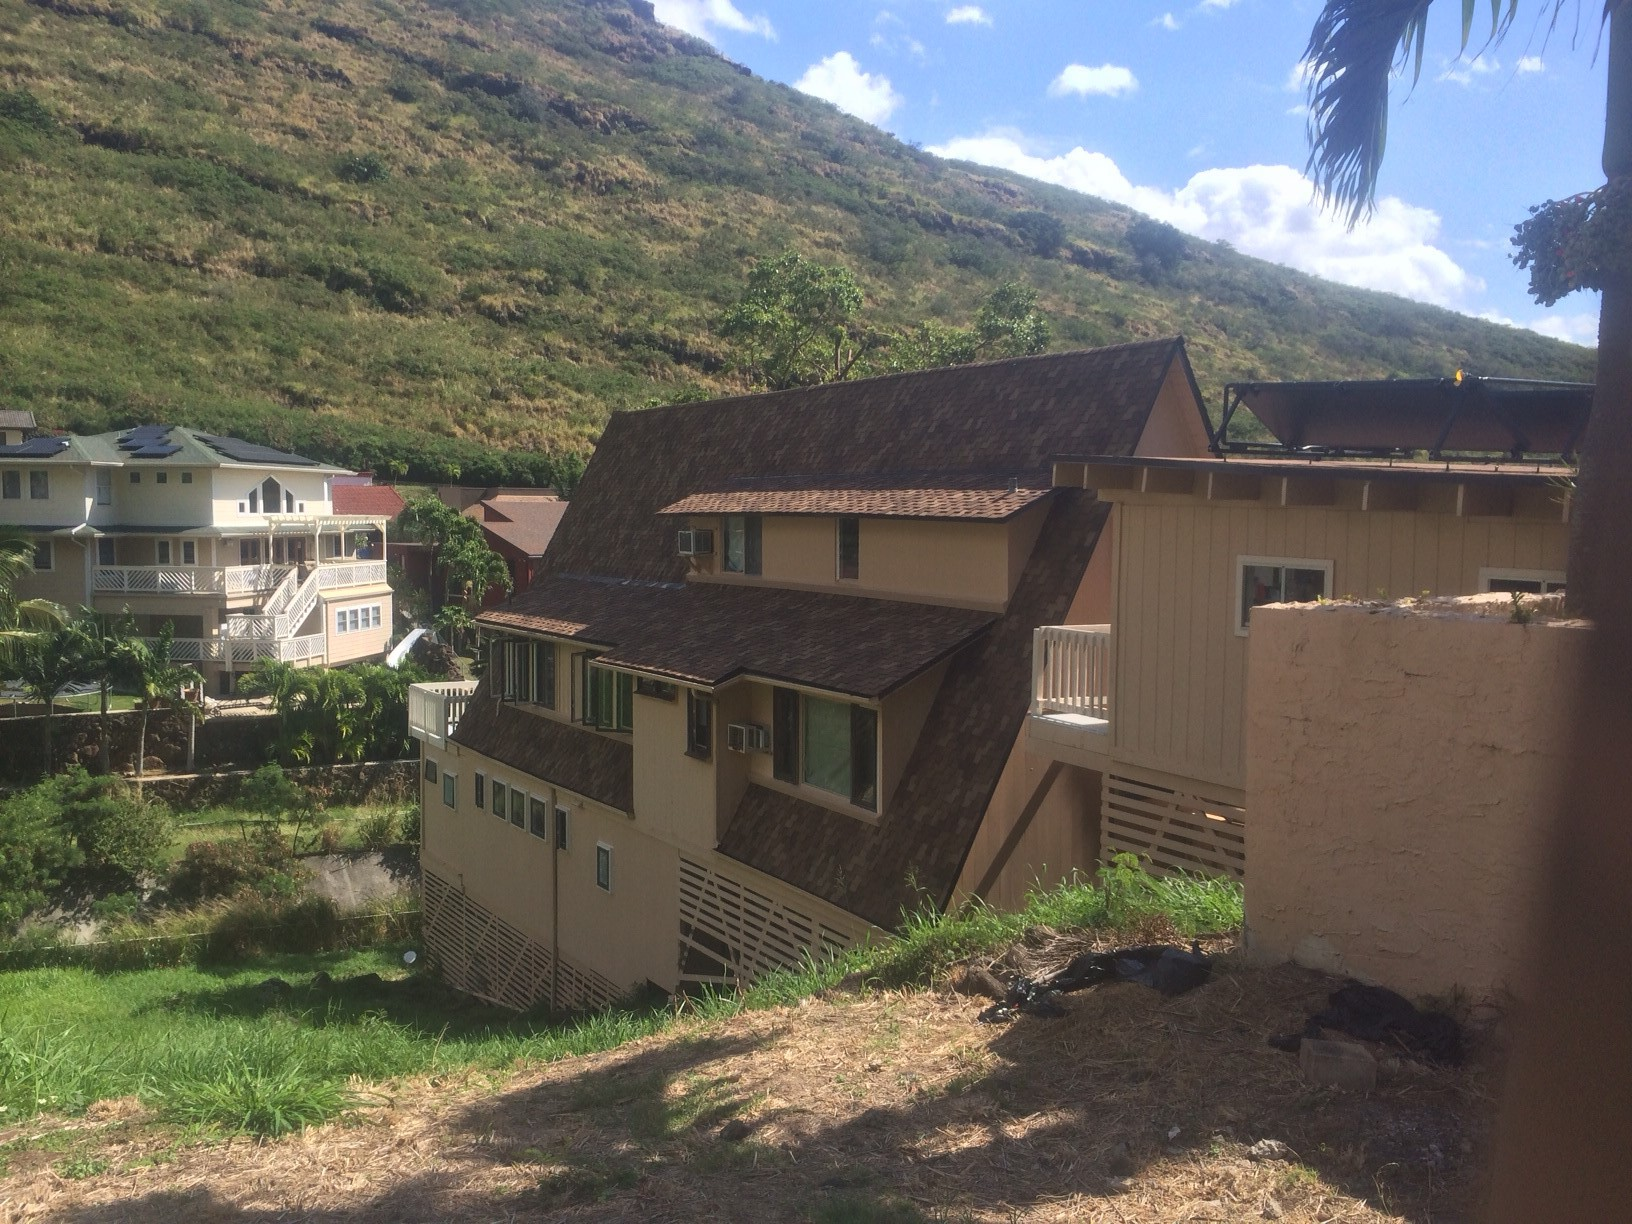 Home in Nuuanu in Honolulu with new shingle roofing